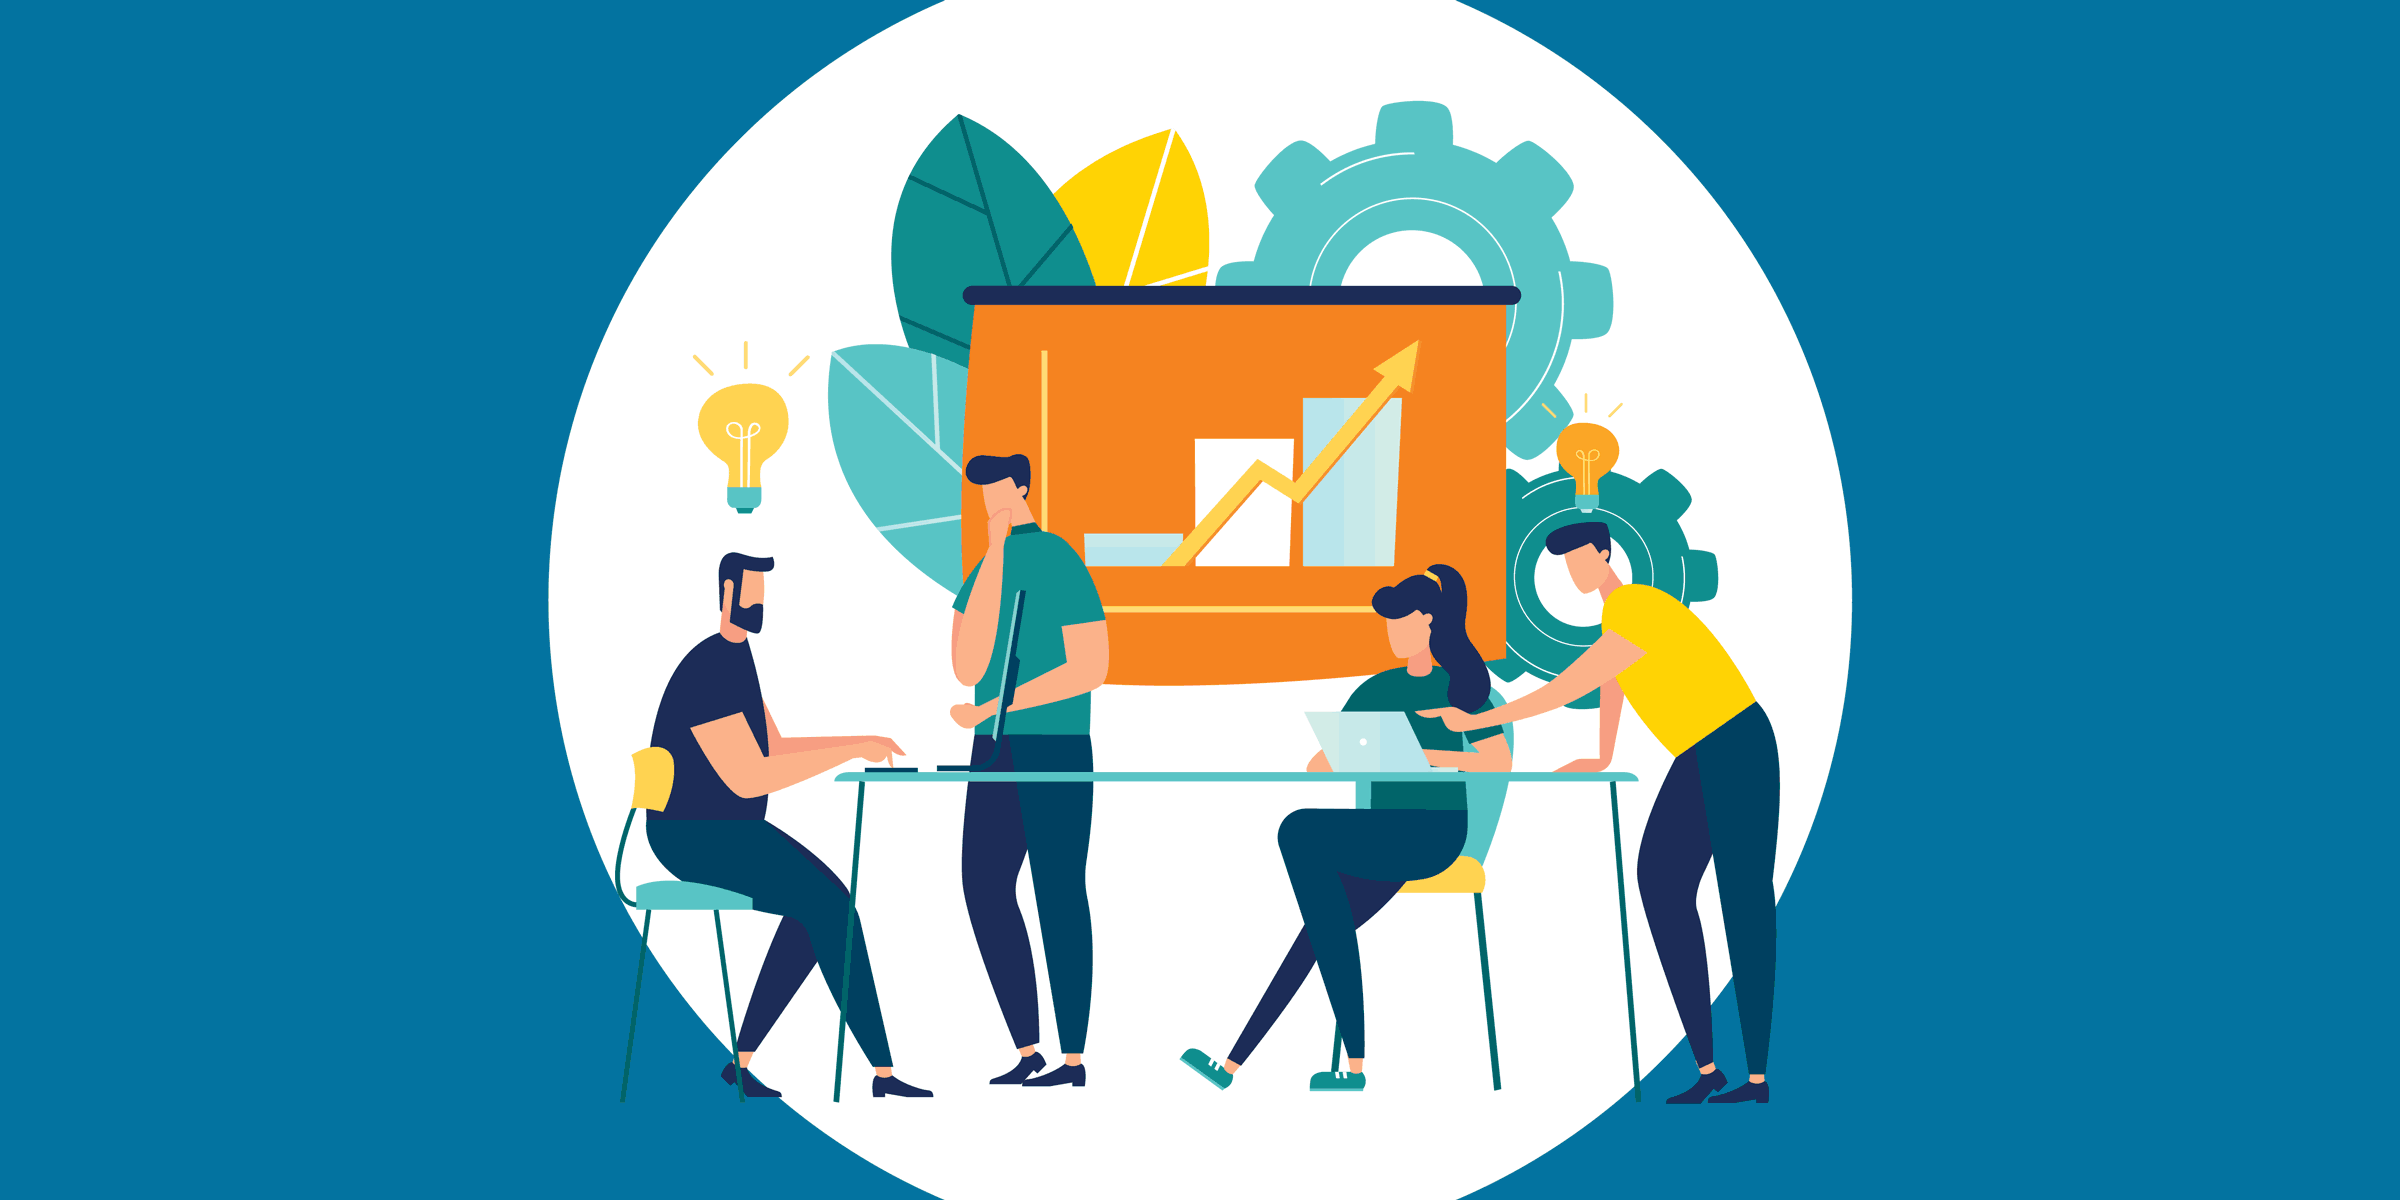 illustration of nonprofit staffers brainstorming about microsoft cloud implementation, sitting at a conference table in front of a trend chart with gears and leaves and lightbulbs over their heads